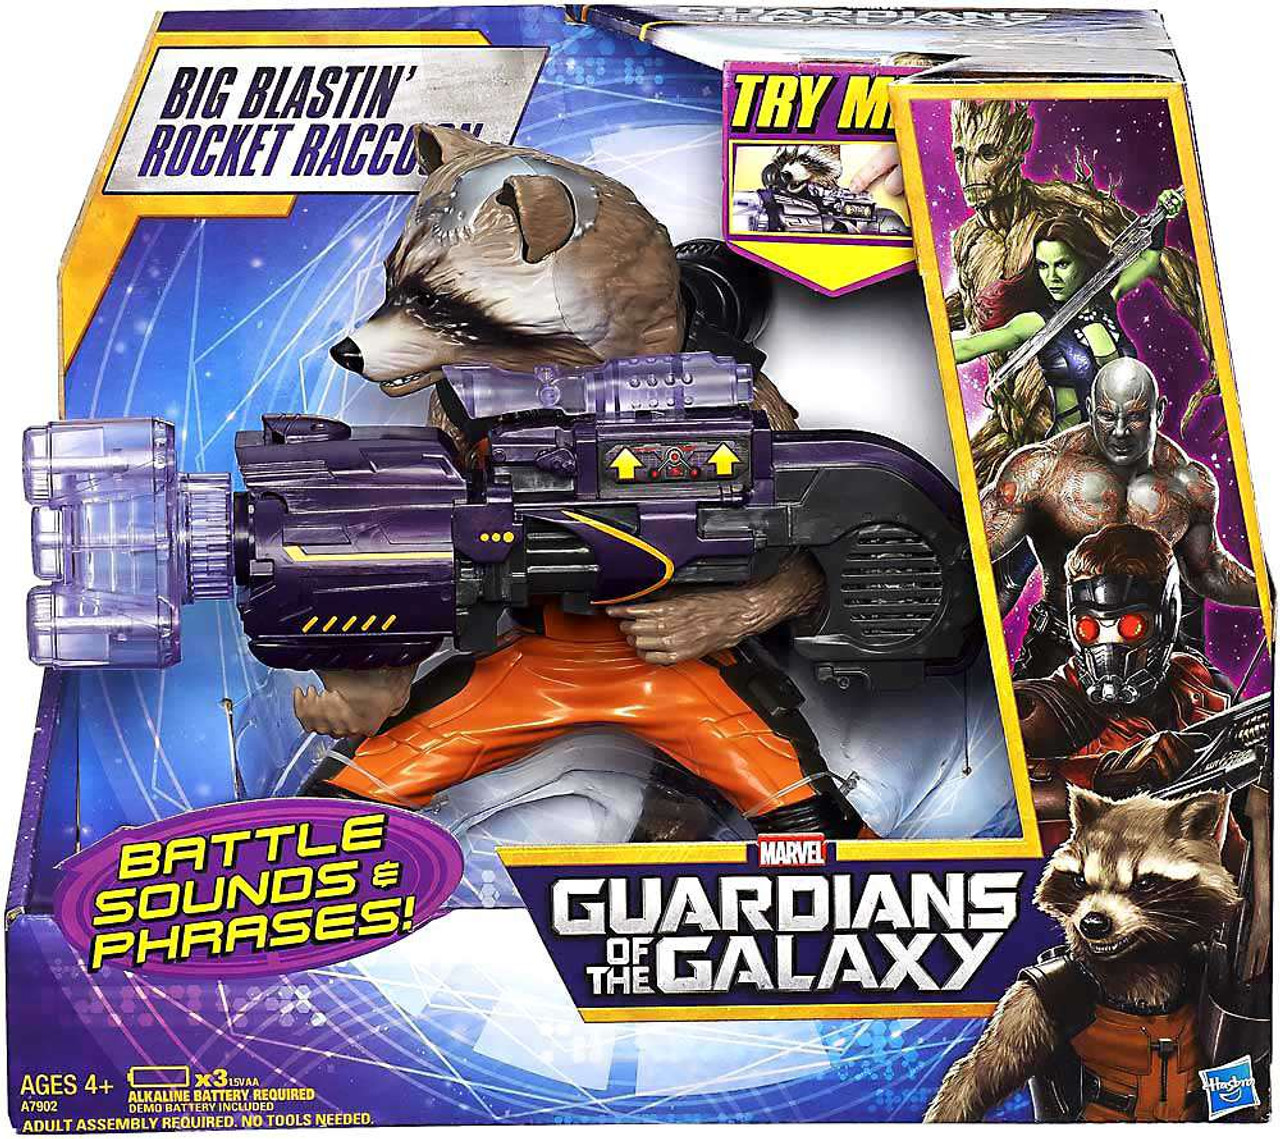 Marvel Guardians Of The Galaxy Big Blastin Rocket Raccoon Action Super Deluxe Vinyl Figure Damaged Package Hasbro Toys Toywiz